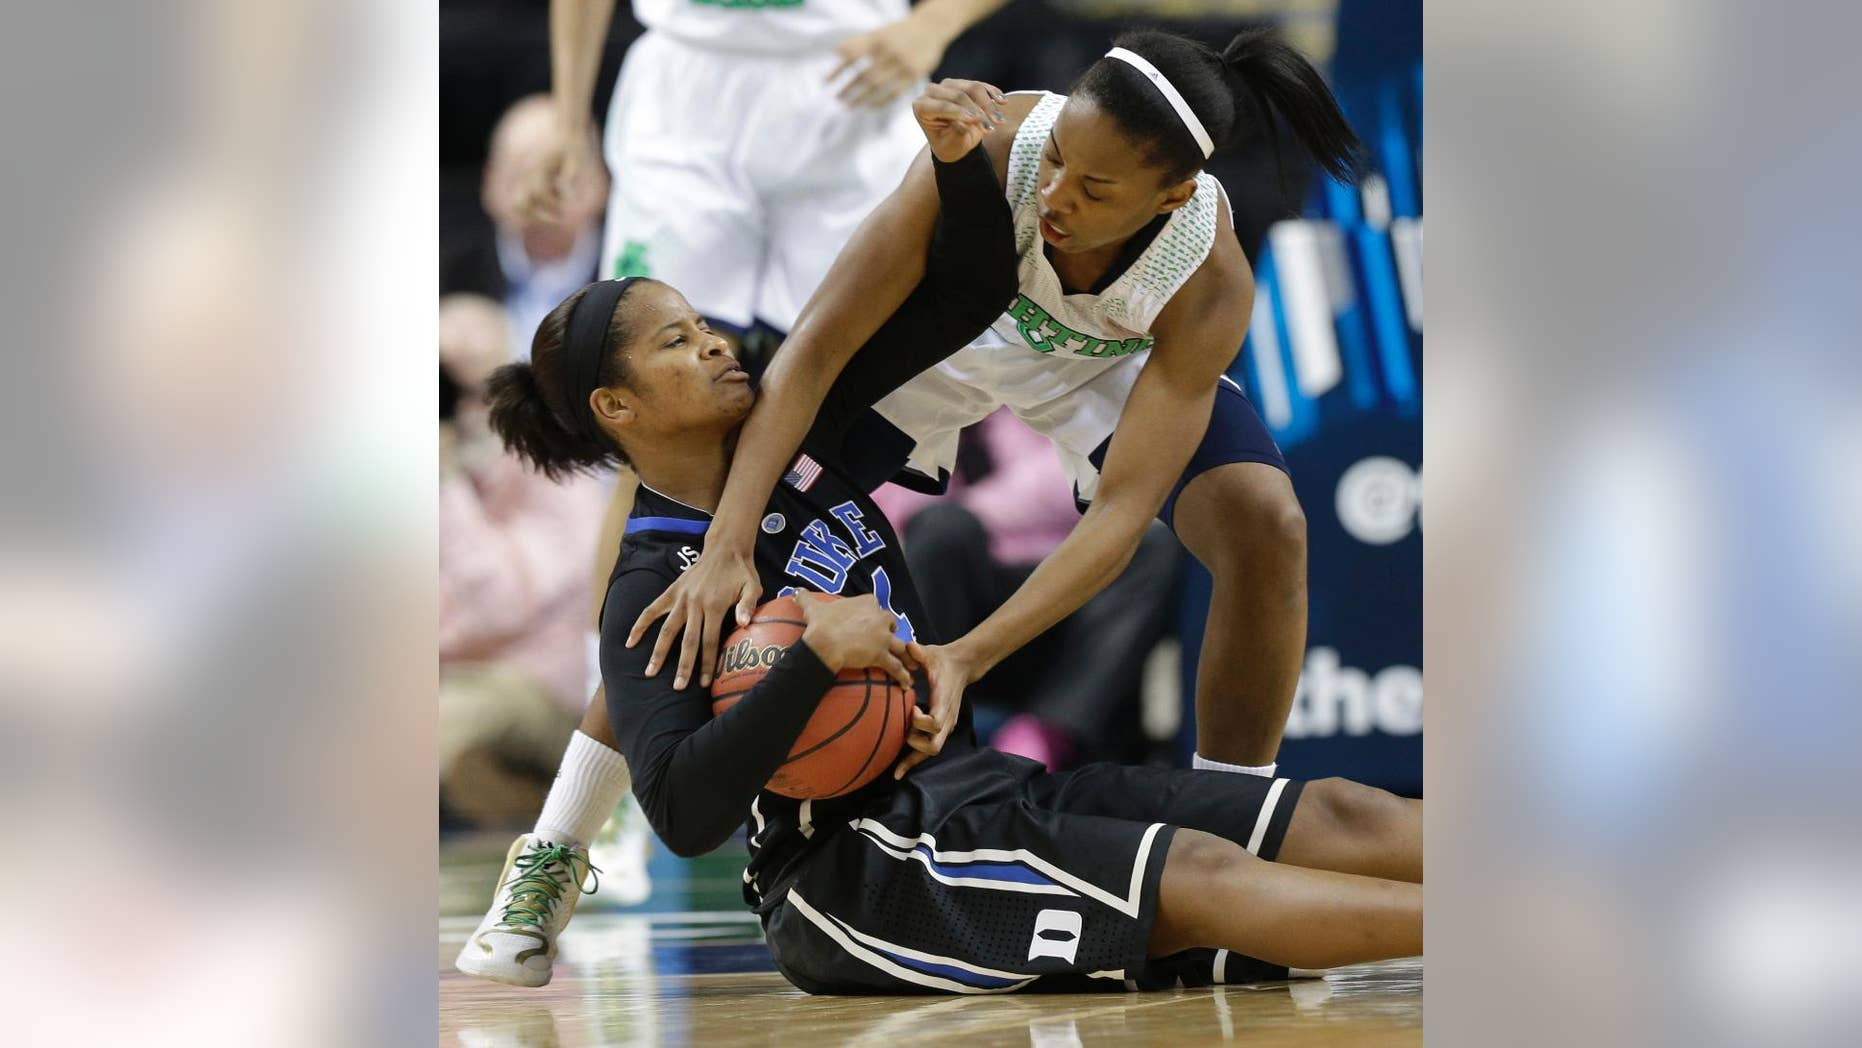 Notre Dame's Lindsay Allen, right, reaches in on Duke's Ka'lia Johnson, left, during the second half of the NCAA college basketball championship game in the Atlantic Coast Conference tournament in Greensboro, N.C., Sunday, March 9, 2014. (AP Photo/Chuck Burton)